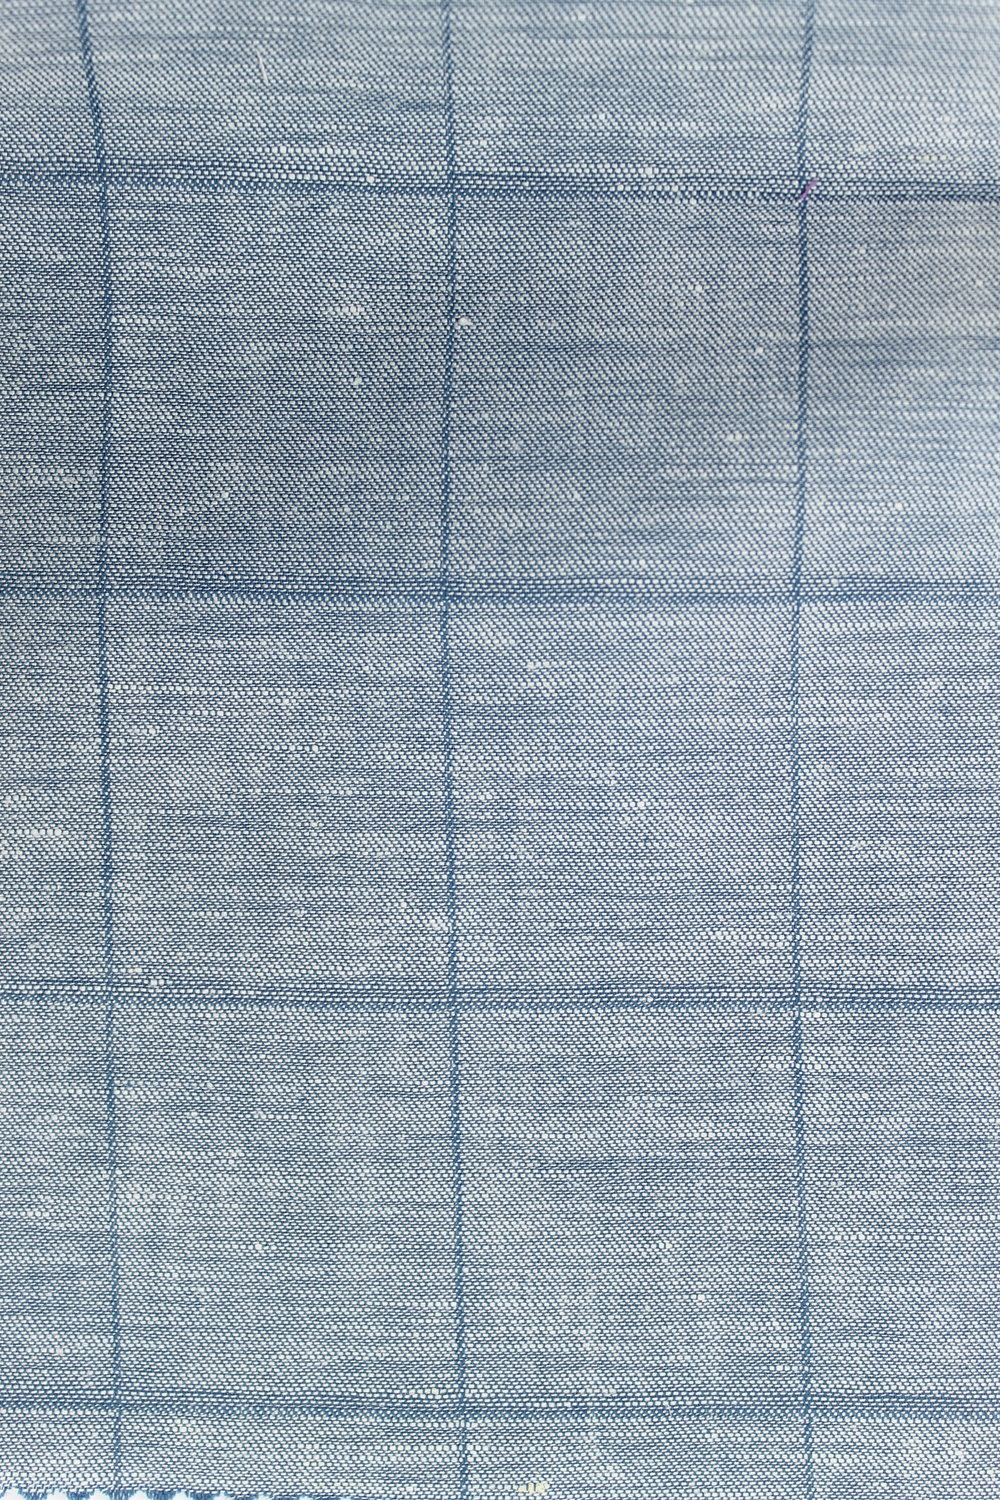 L115 Blue Windowpane Linen.JPG